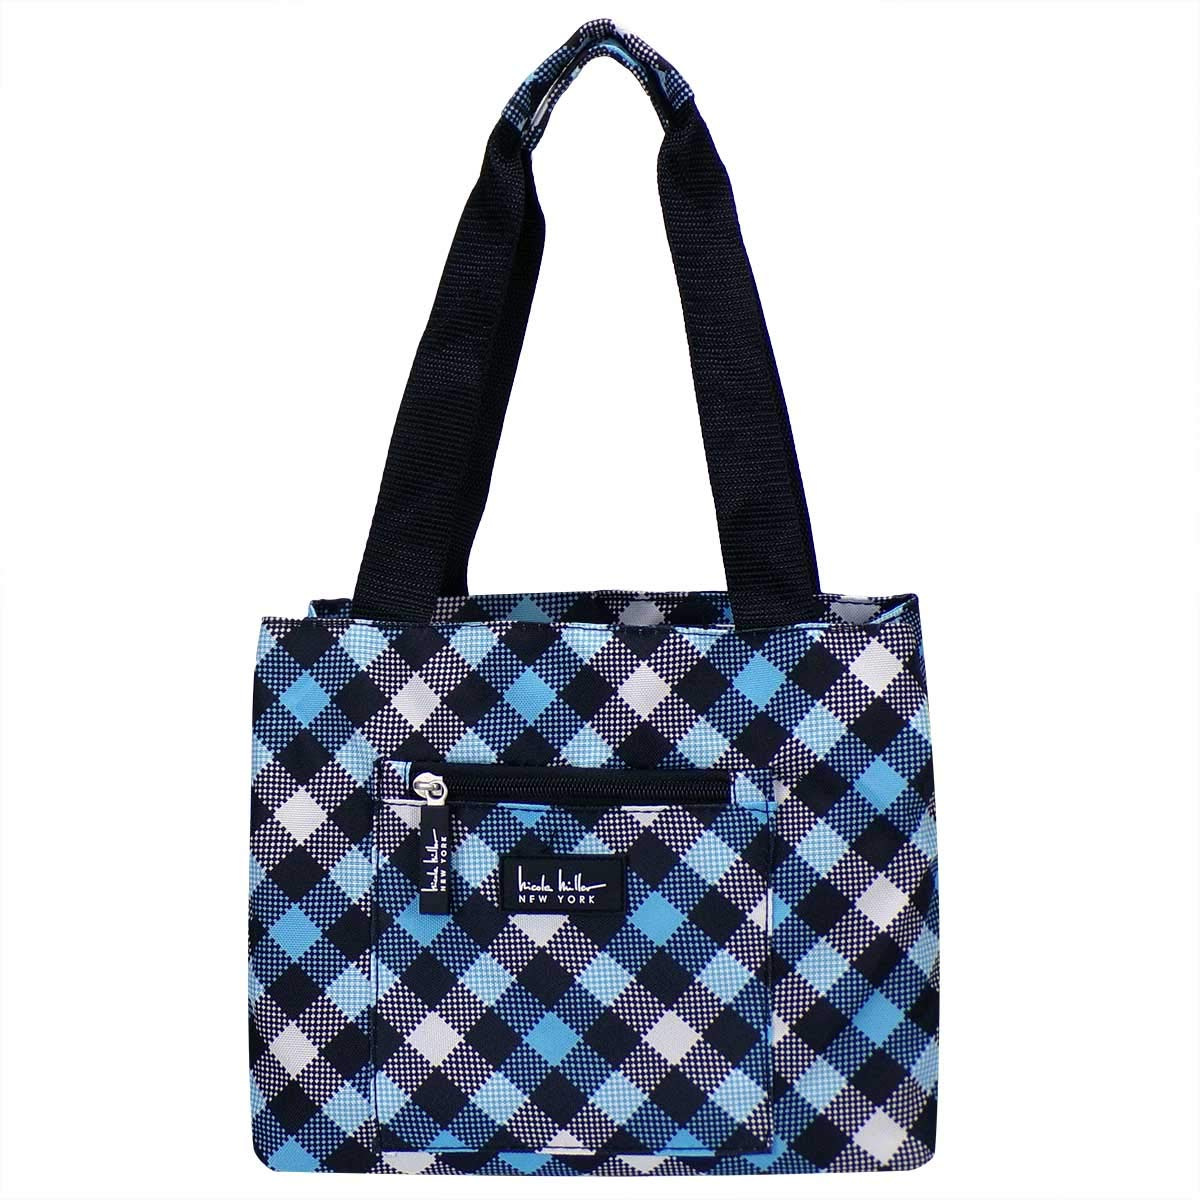 """Nicole Miller of New York Insulated Waterproof Lunch Box Cooler Bag - 11"""" Lunch Tote (Blue Plaid)"""